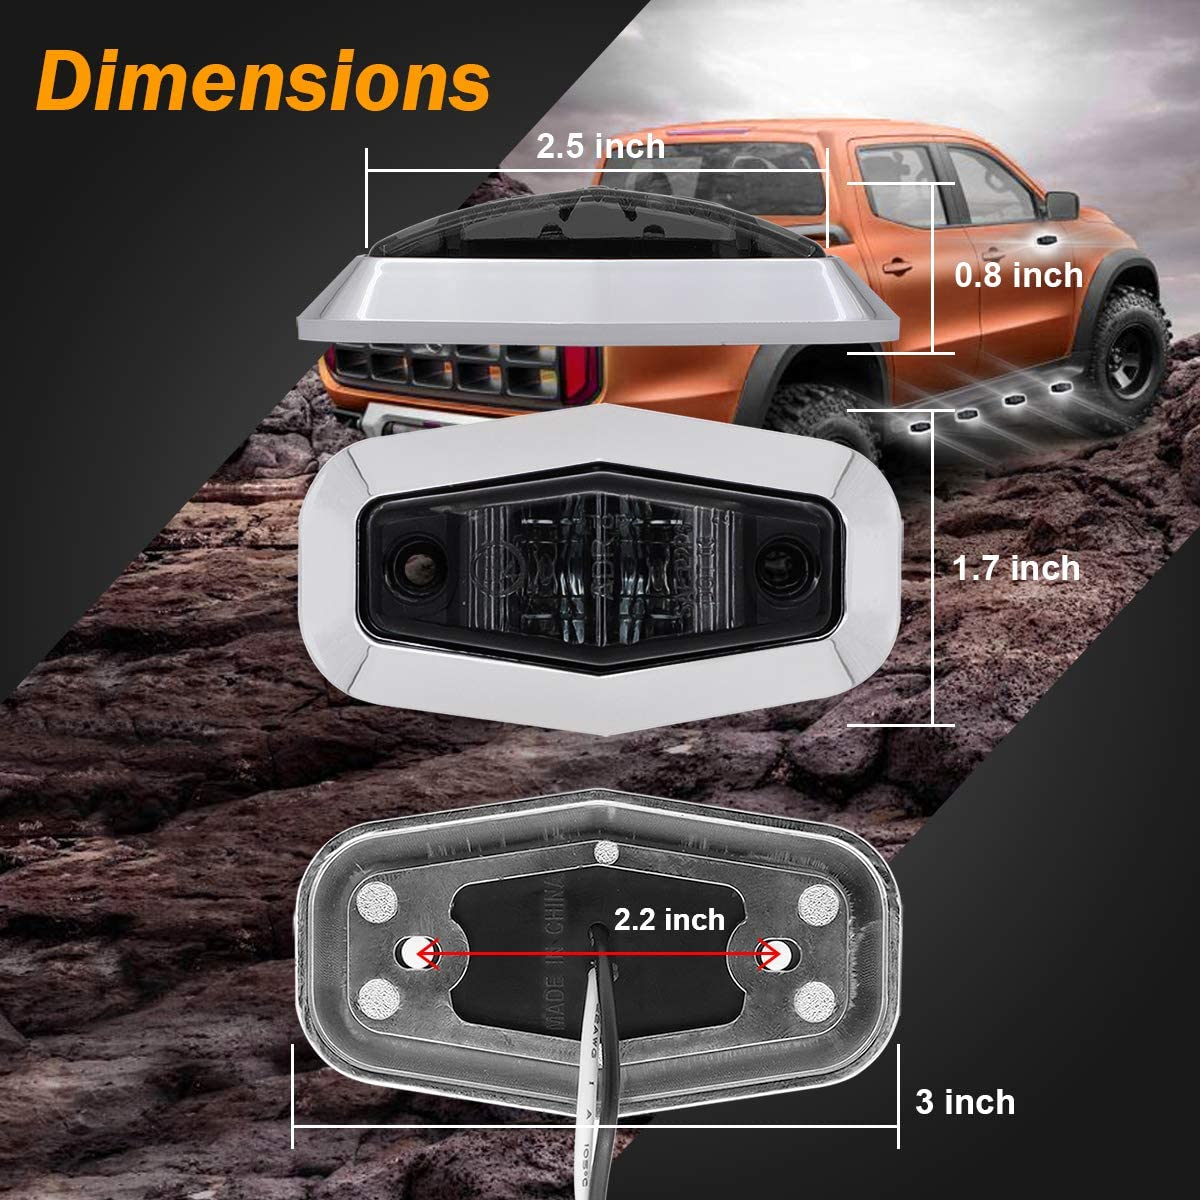 Meerkatt Pack of 10 2.5 Inch Mini Smoked Lens Green LED Surface Mount Side Marker Lights Indicator Clearance Lamp Waterproof Trailer Boat Lorry Truck SUV Camper RV Sealed 12v DC Super Flux Bulb AA12